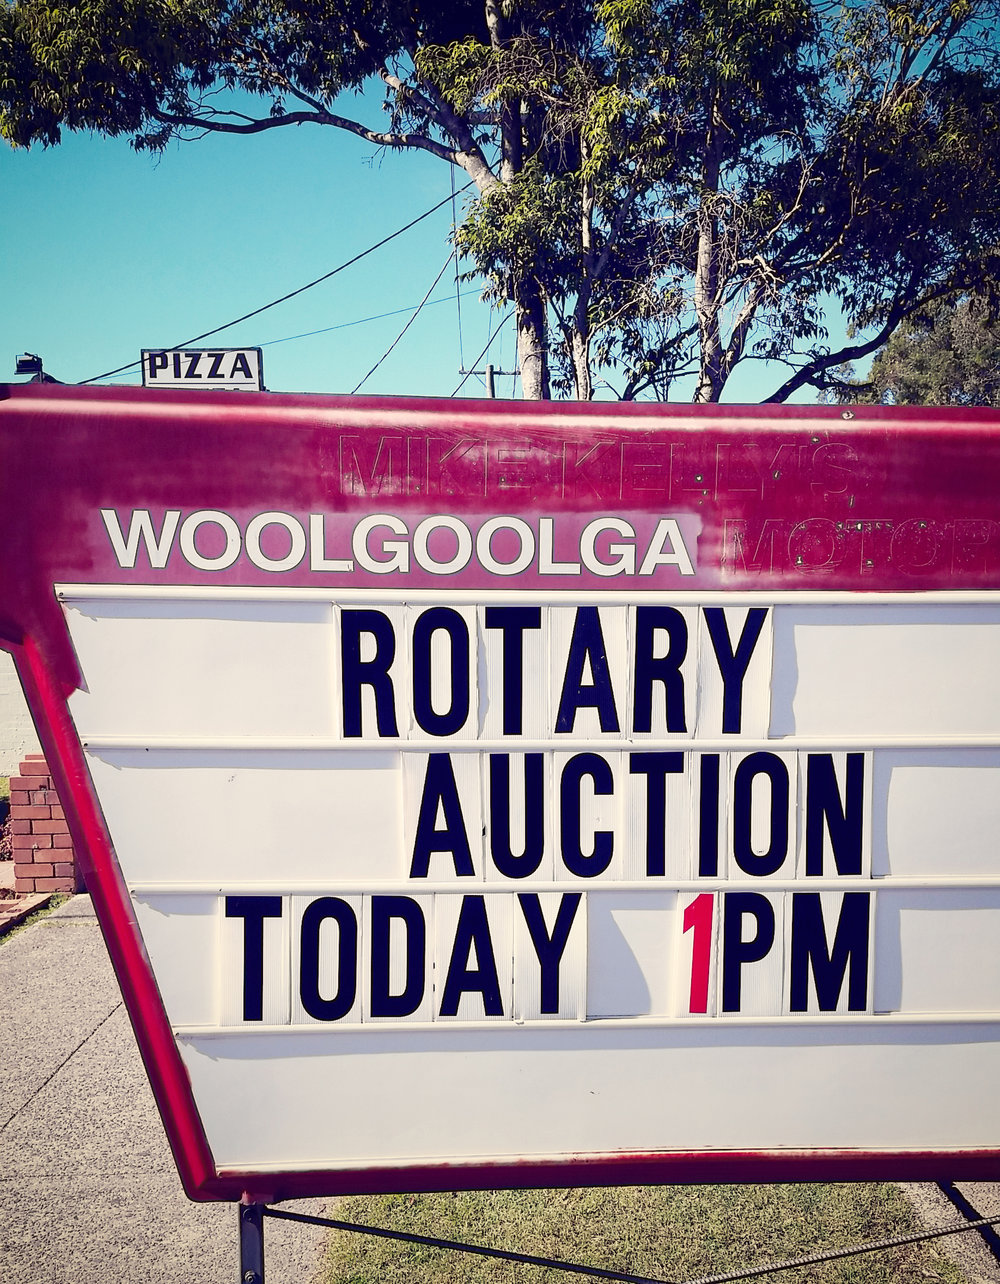 Woolgoolga Rotary Auction